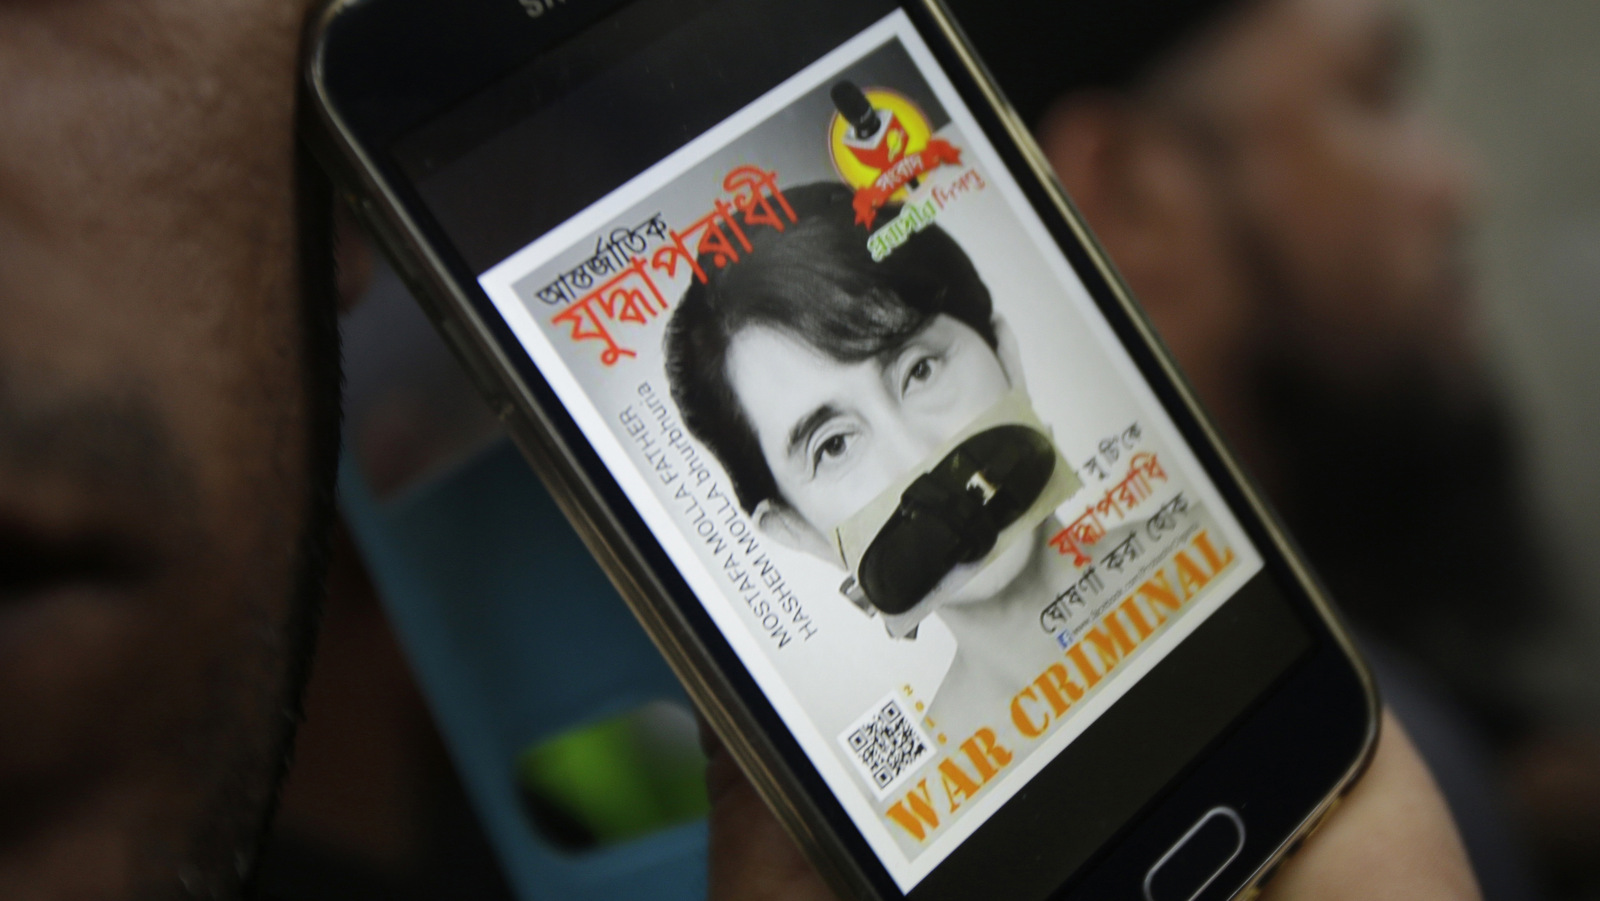 A portrait of Myanmar's Foreign Minister Aung San Suu Kyi with her mouth covered with a sandal displayed on a mobile phone screen is shown by a protester during a demonstration in front of the Myanmar Embassy in Bangkok, Thailand, Friday, Nov. 25, 2016 against the murder, displacement and persecution of Muslim Rohingya in Myanmar. (AP Photo/Sakchai Lalit)